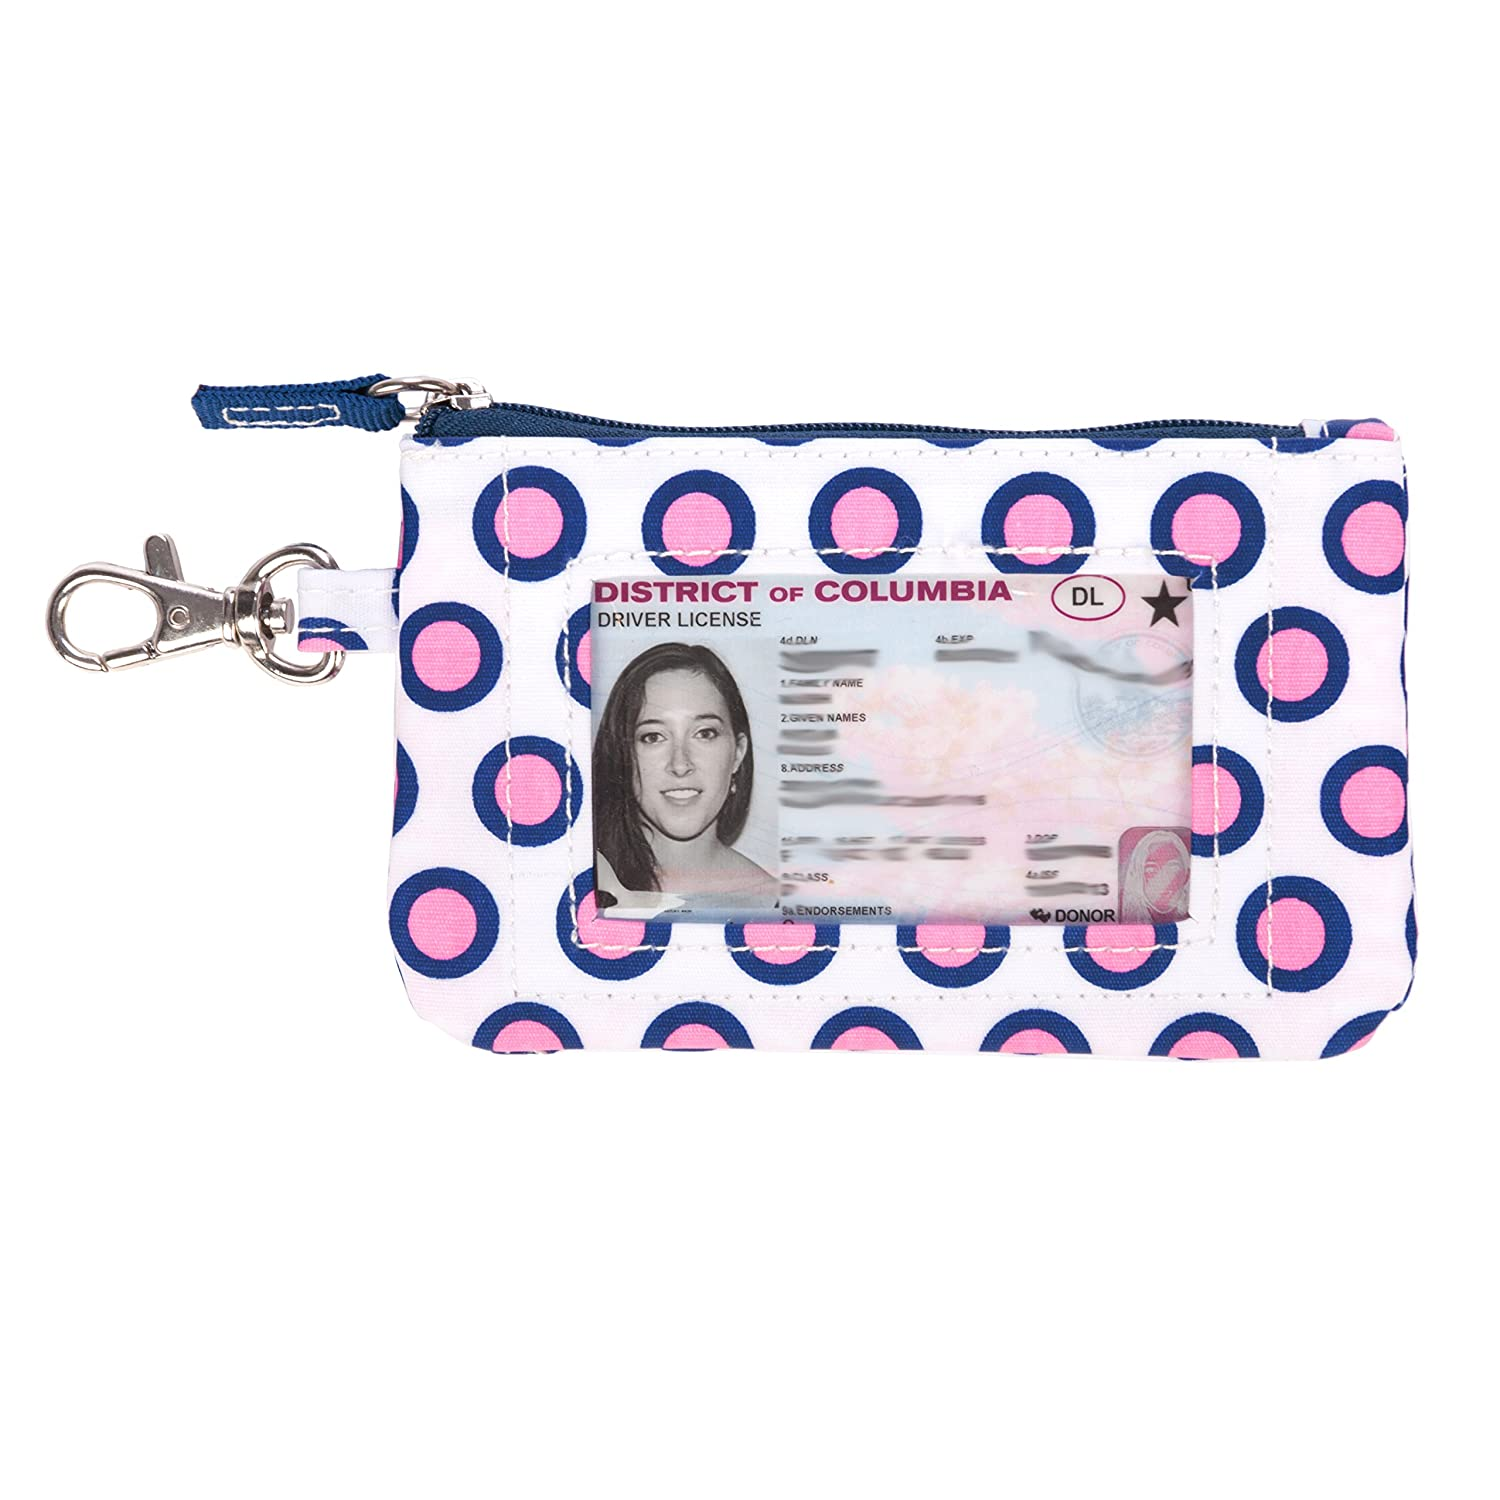 SCOUT IDKase Card Holder or Wallet, ID Holder Window, Key Clasp, Water Resistant, Zips Closed, Guys and Dots 24270